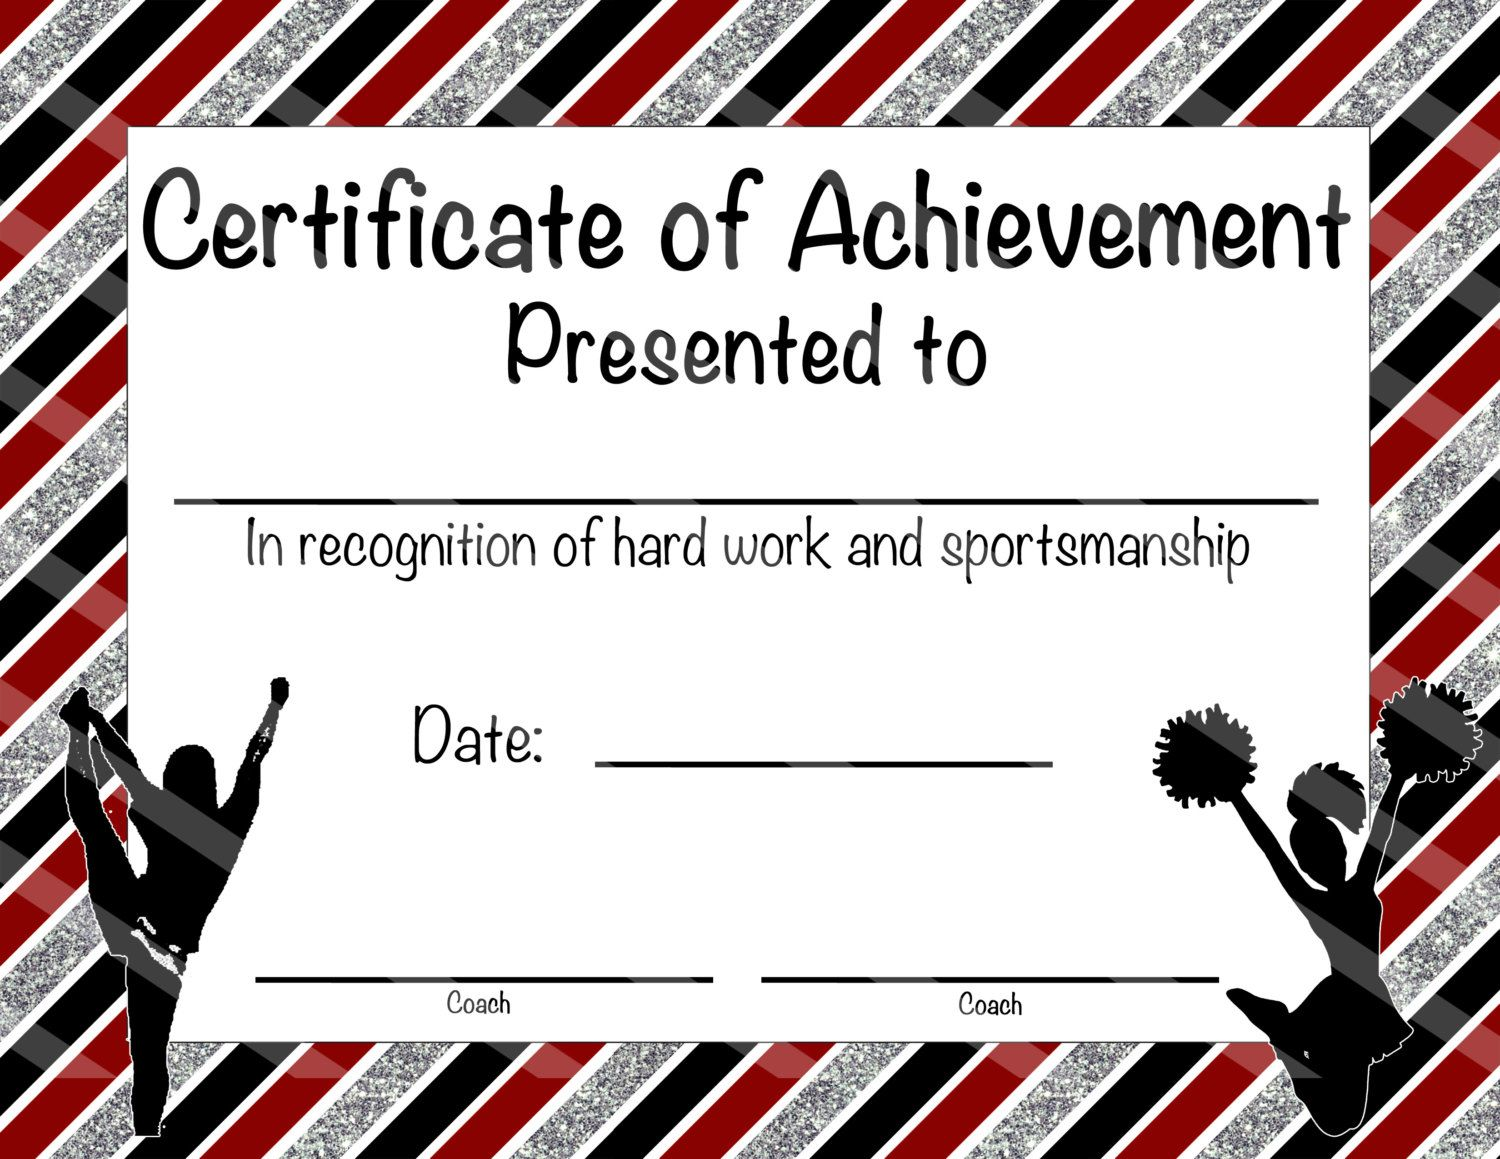 Cheerleading certificate cheerleading by nanaspartyprintables cheerleading certificate cheerleading award cheerleading diy cheerleading printable cheerleading achievement end of season award yelopaper Image collections